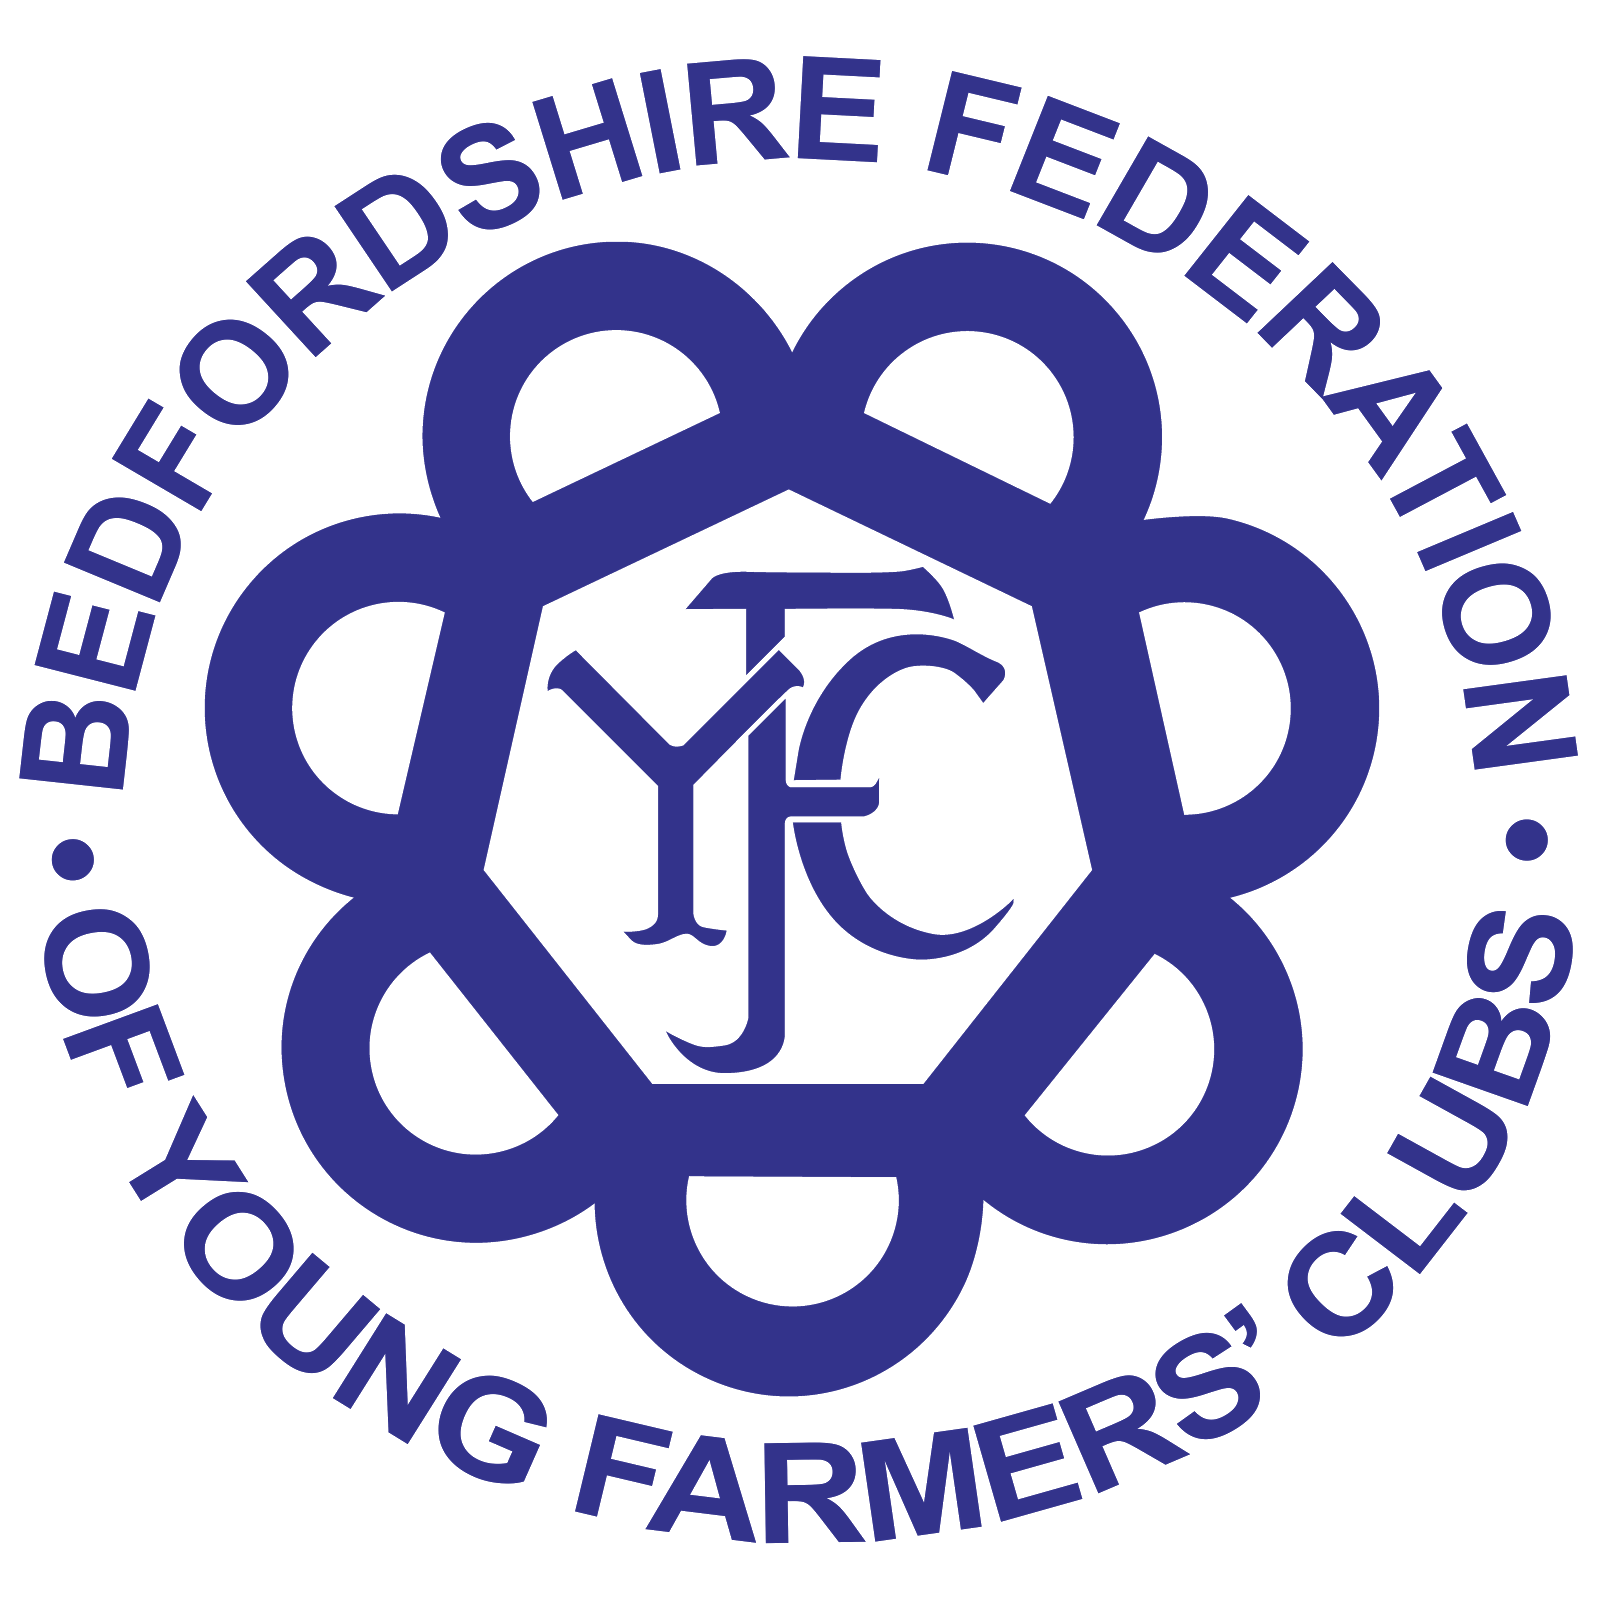 Bedfordshire Young Farmers' Clubs